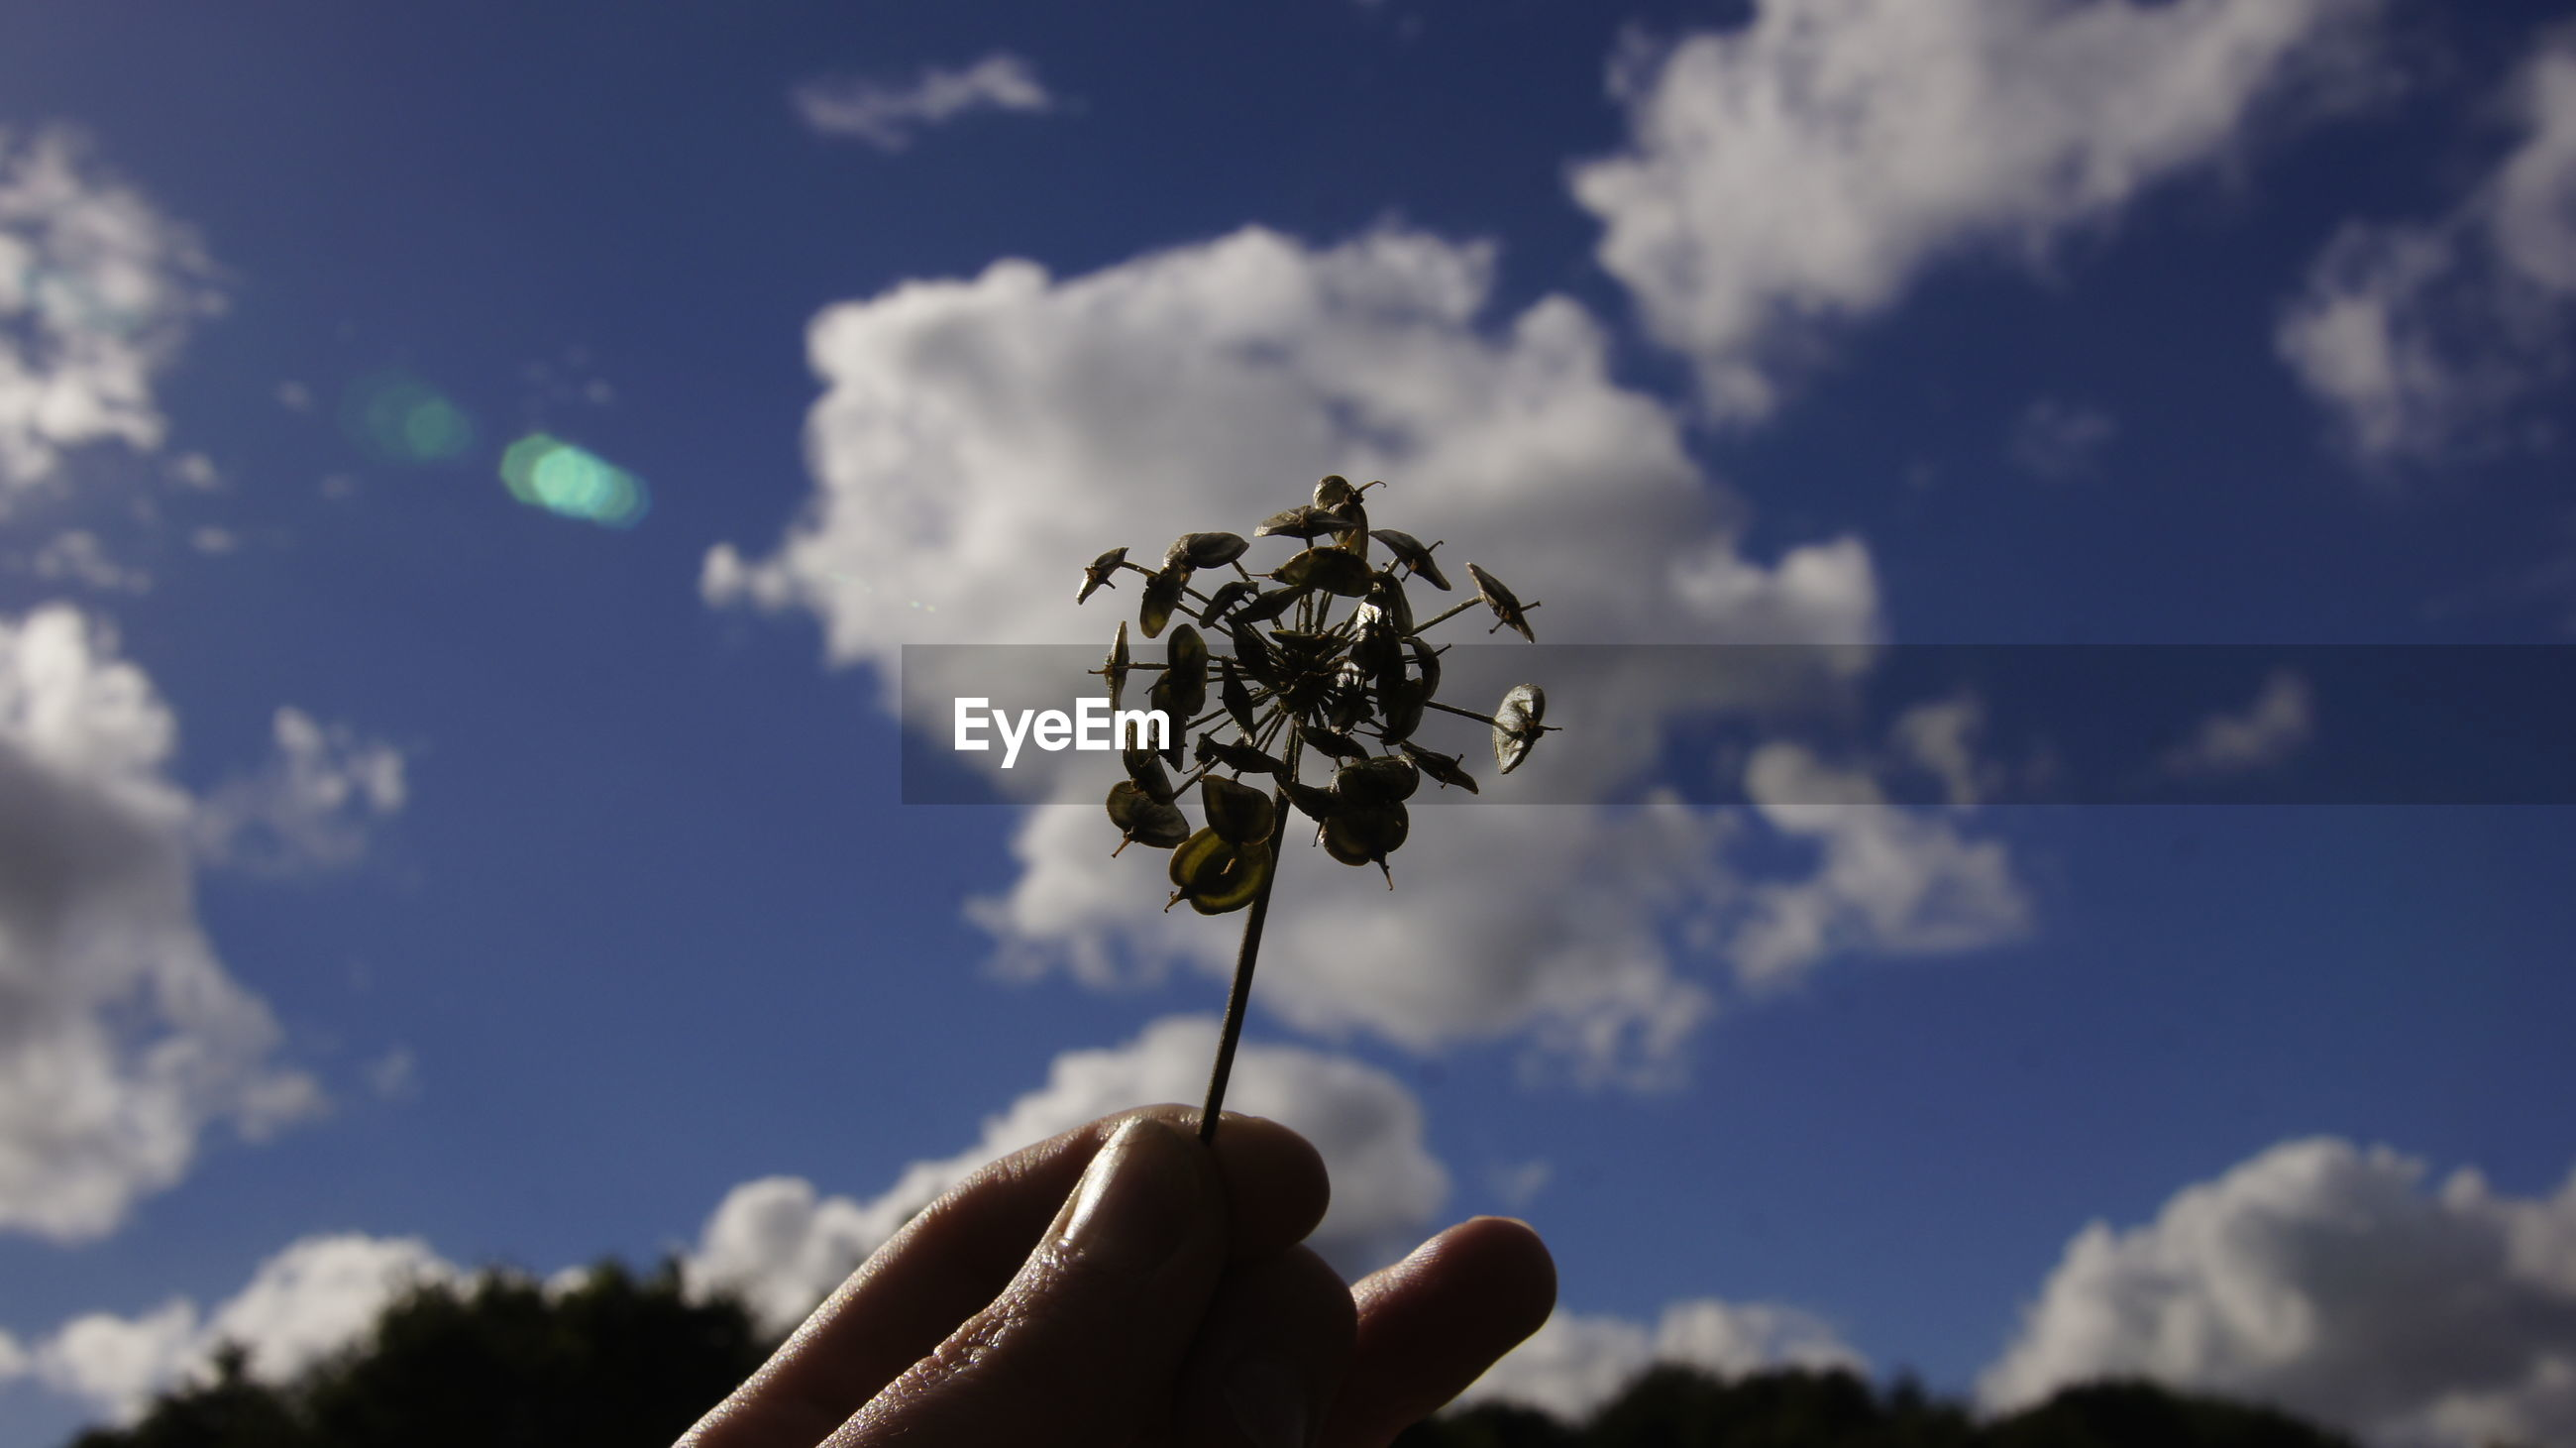 Cropped hand of person holding plant against cloudy sky